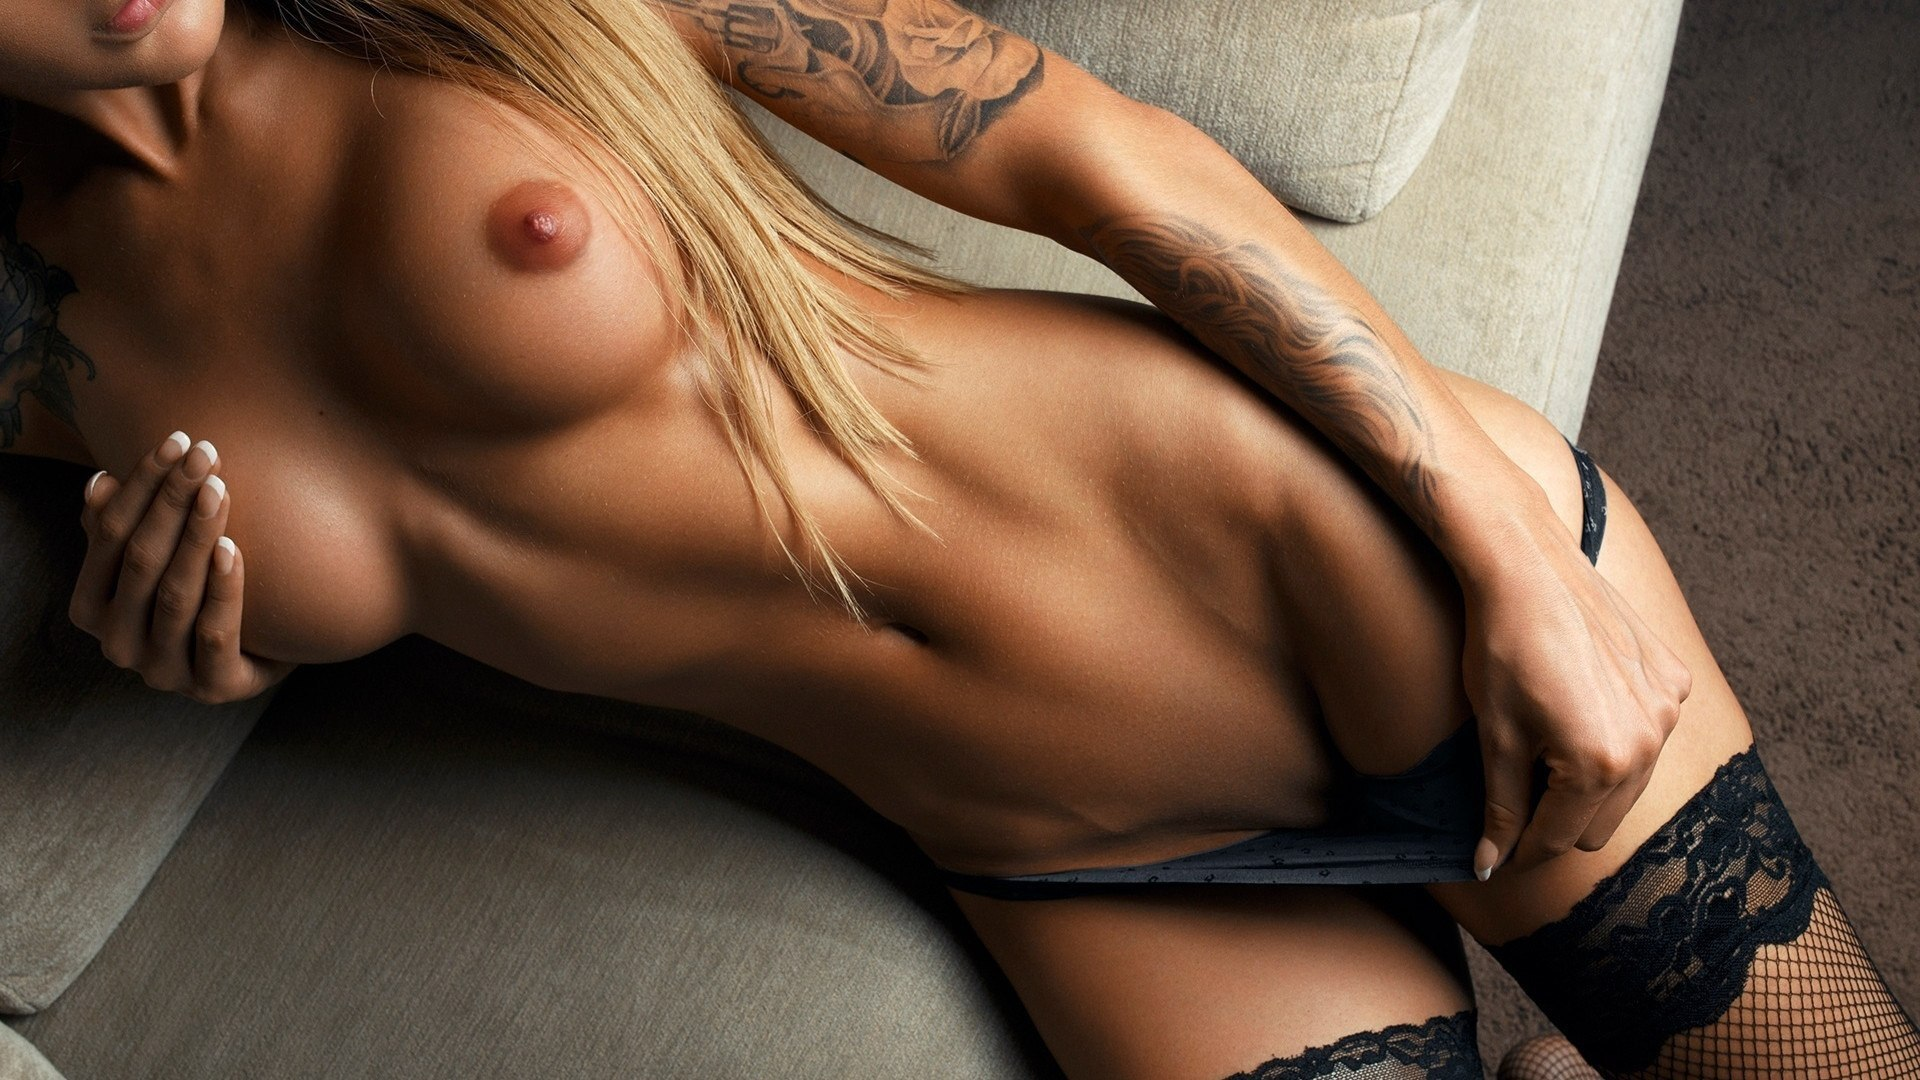 Grab Your Dick So It Doesn't Explode From Watching Young Athletic Girls Masturbation On Live Cams!